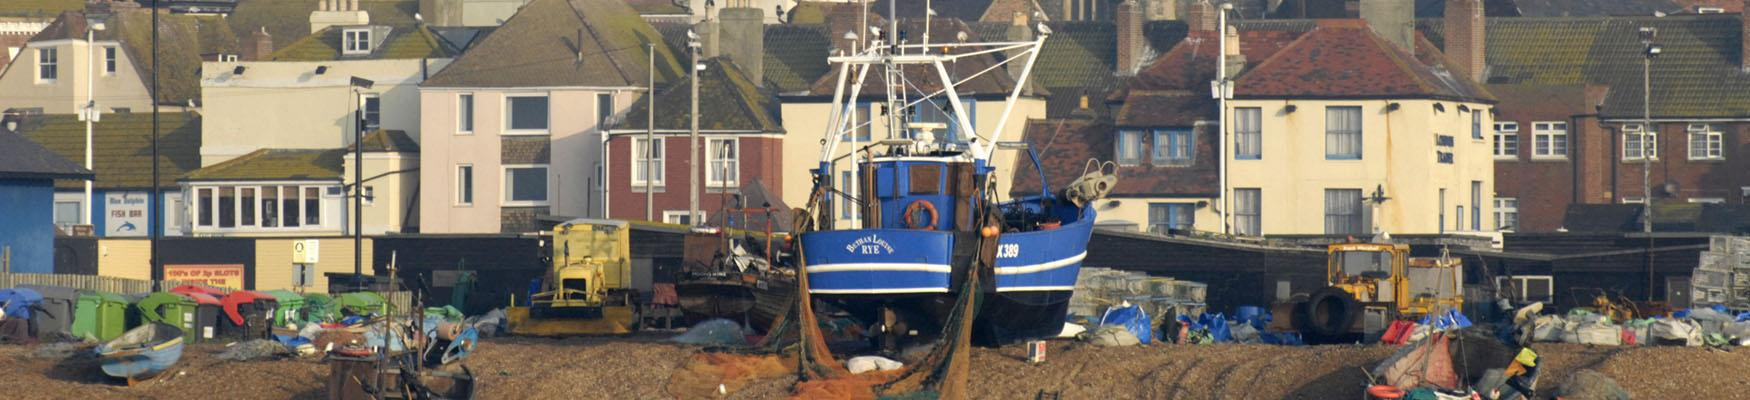 Hastings Stade and fishing boats